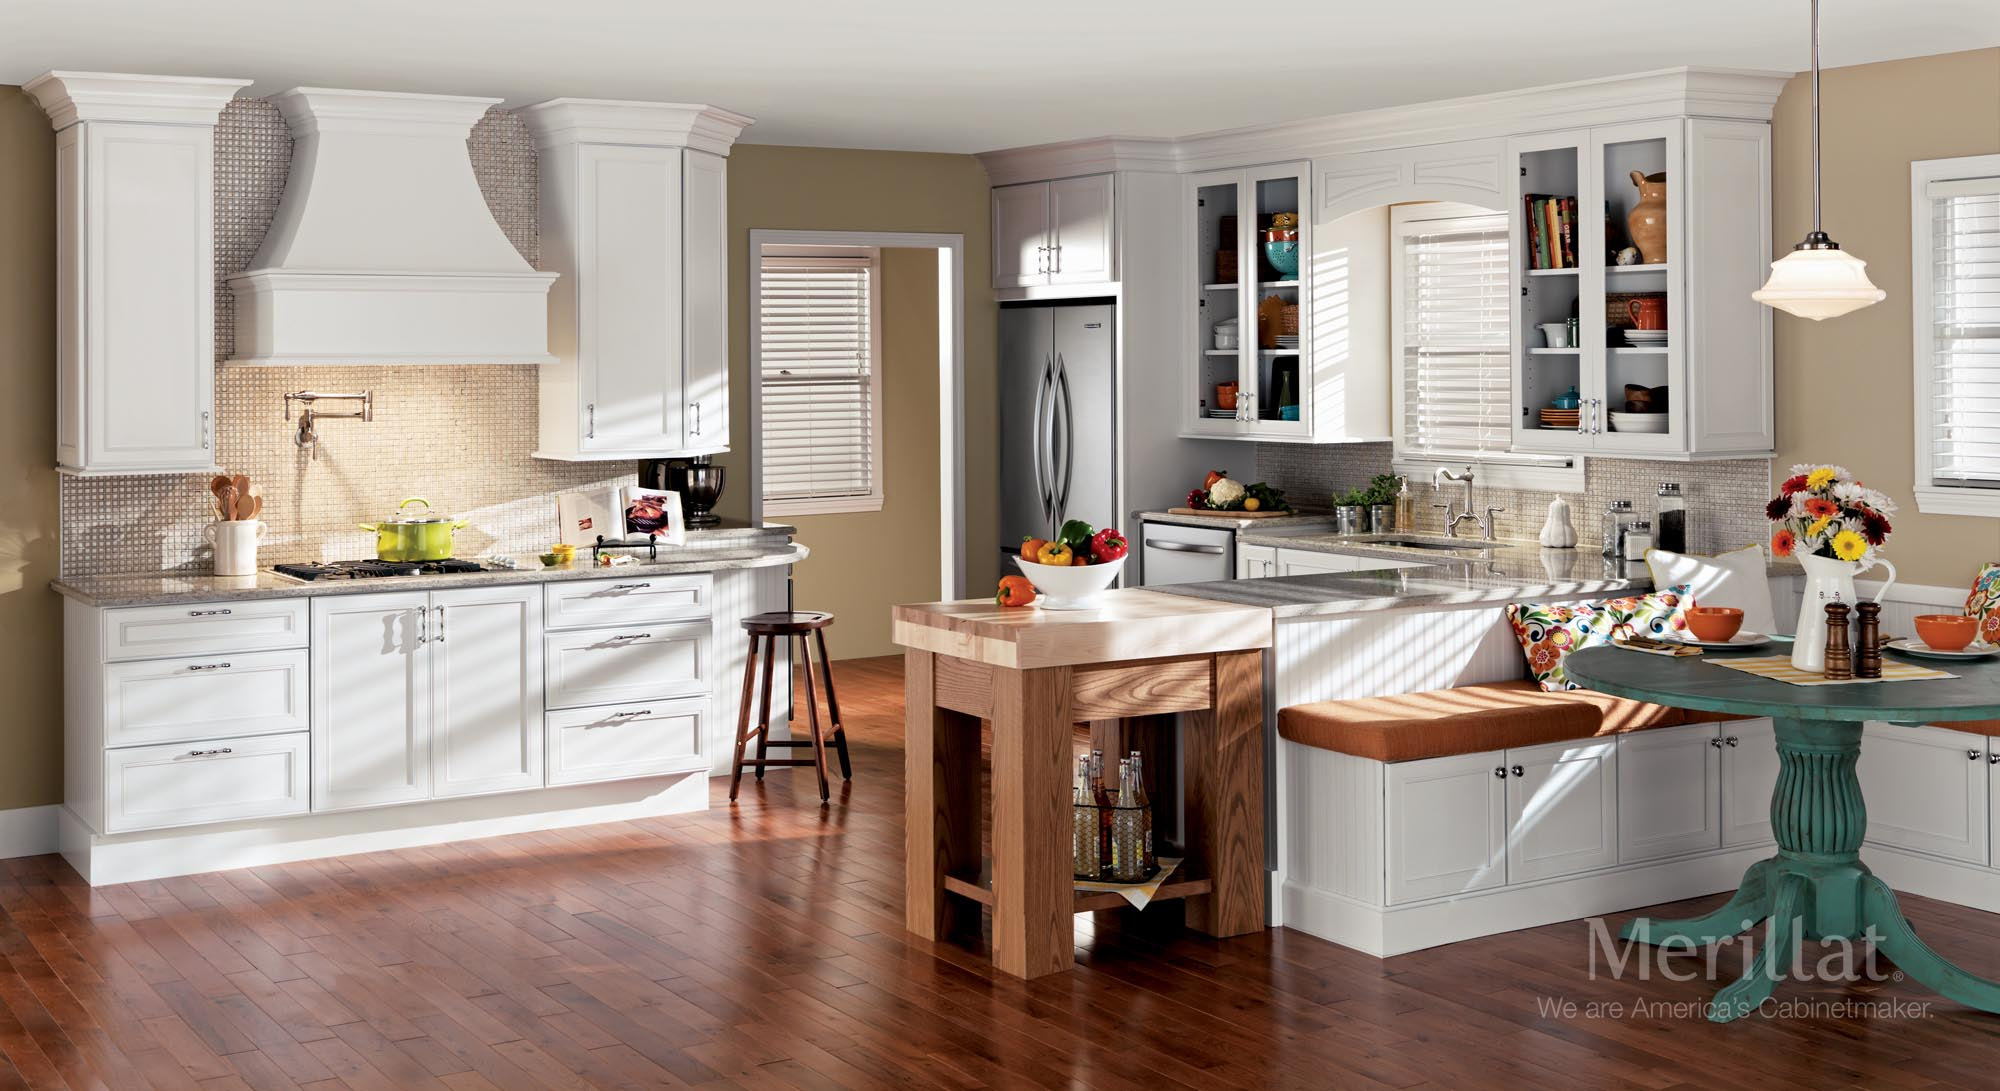 merillat classic bellingham in maple cotton - Merillat Classic Kitchen Cabinets